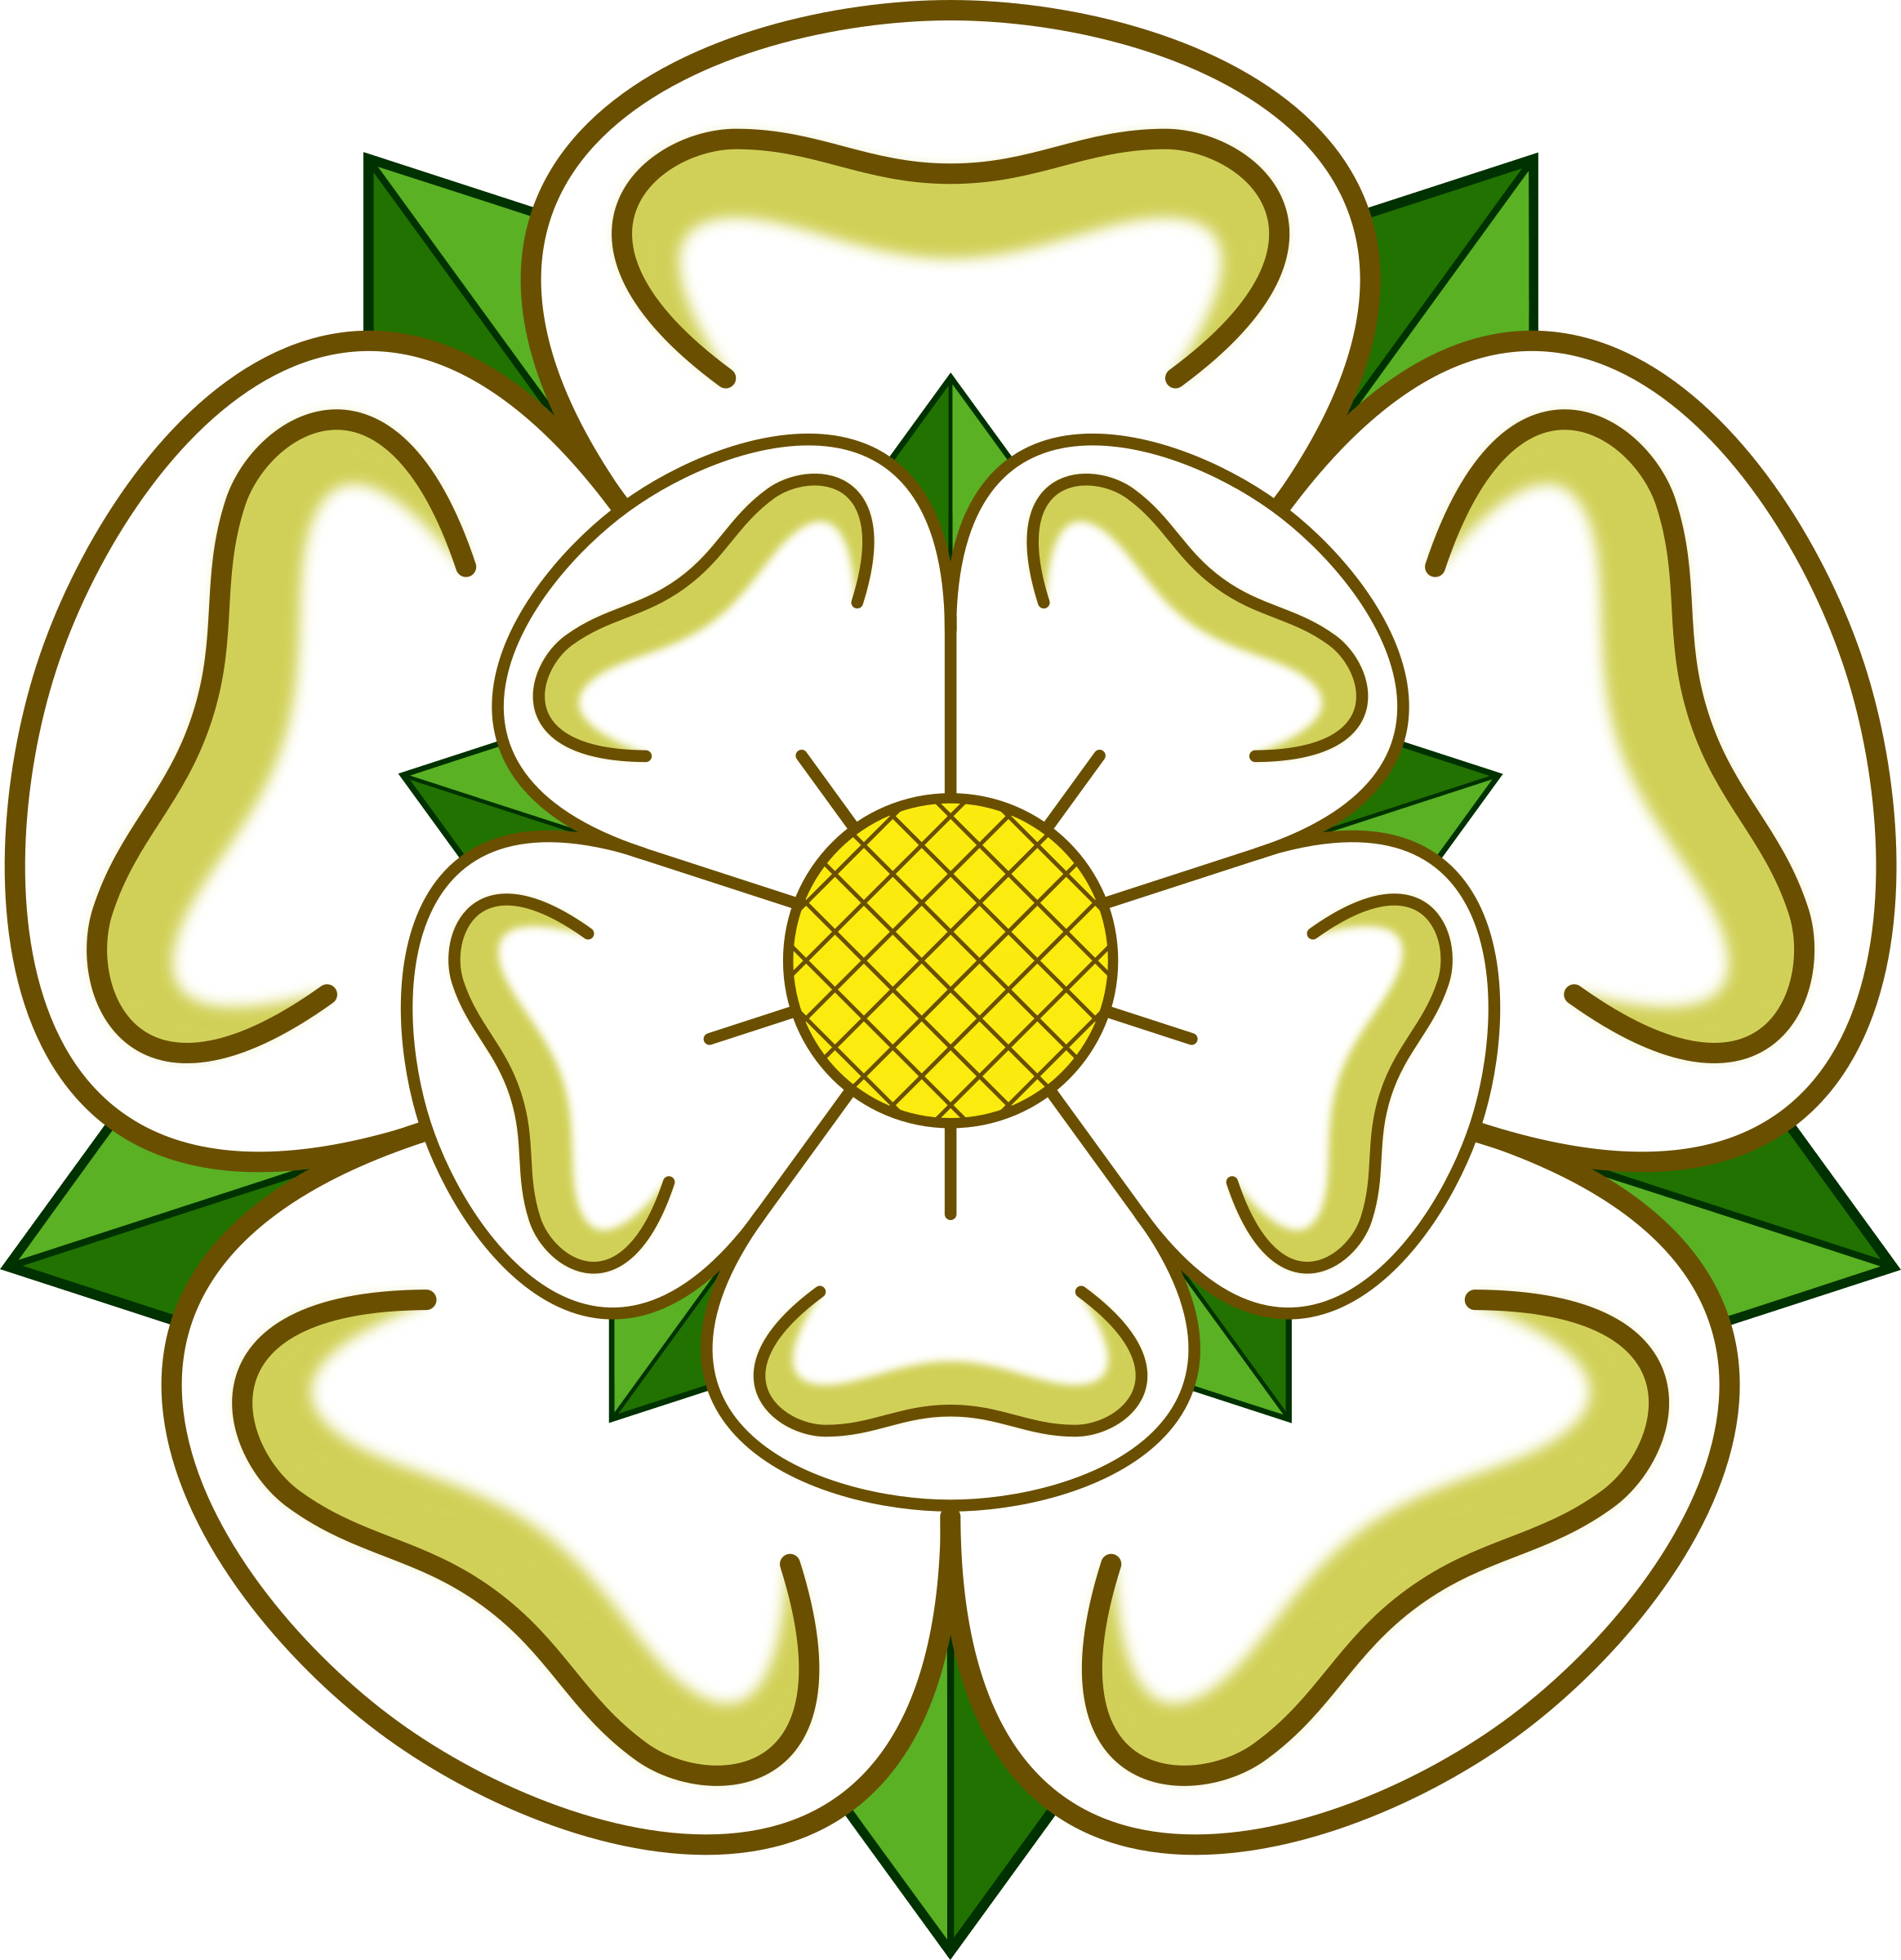 Clipart yorkshire rose.